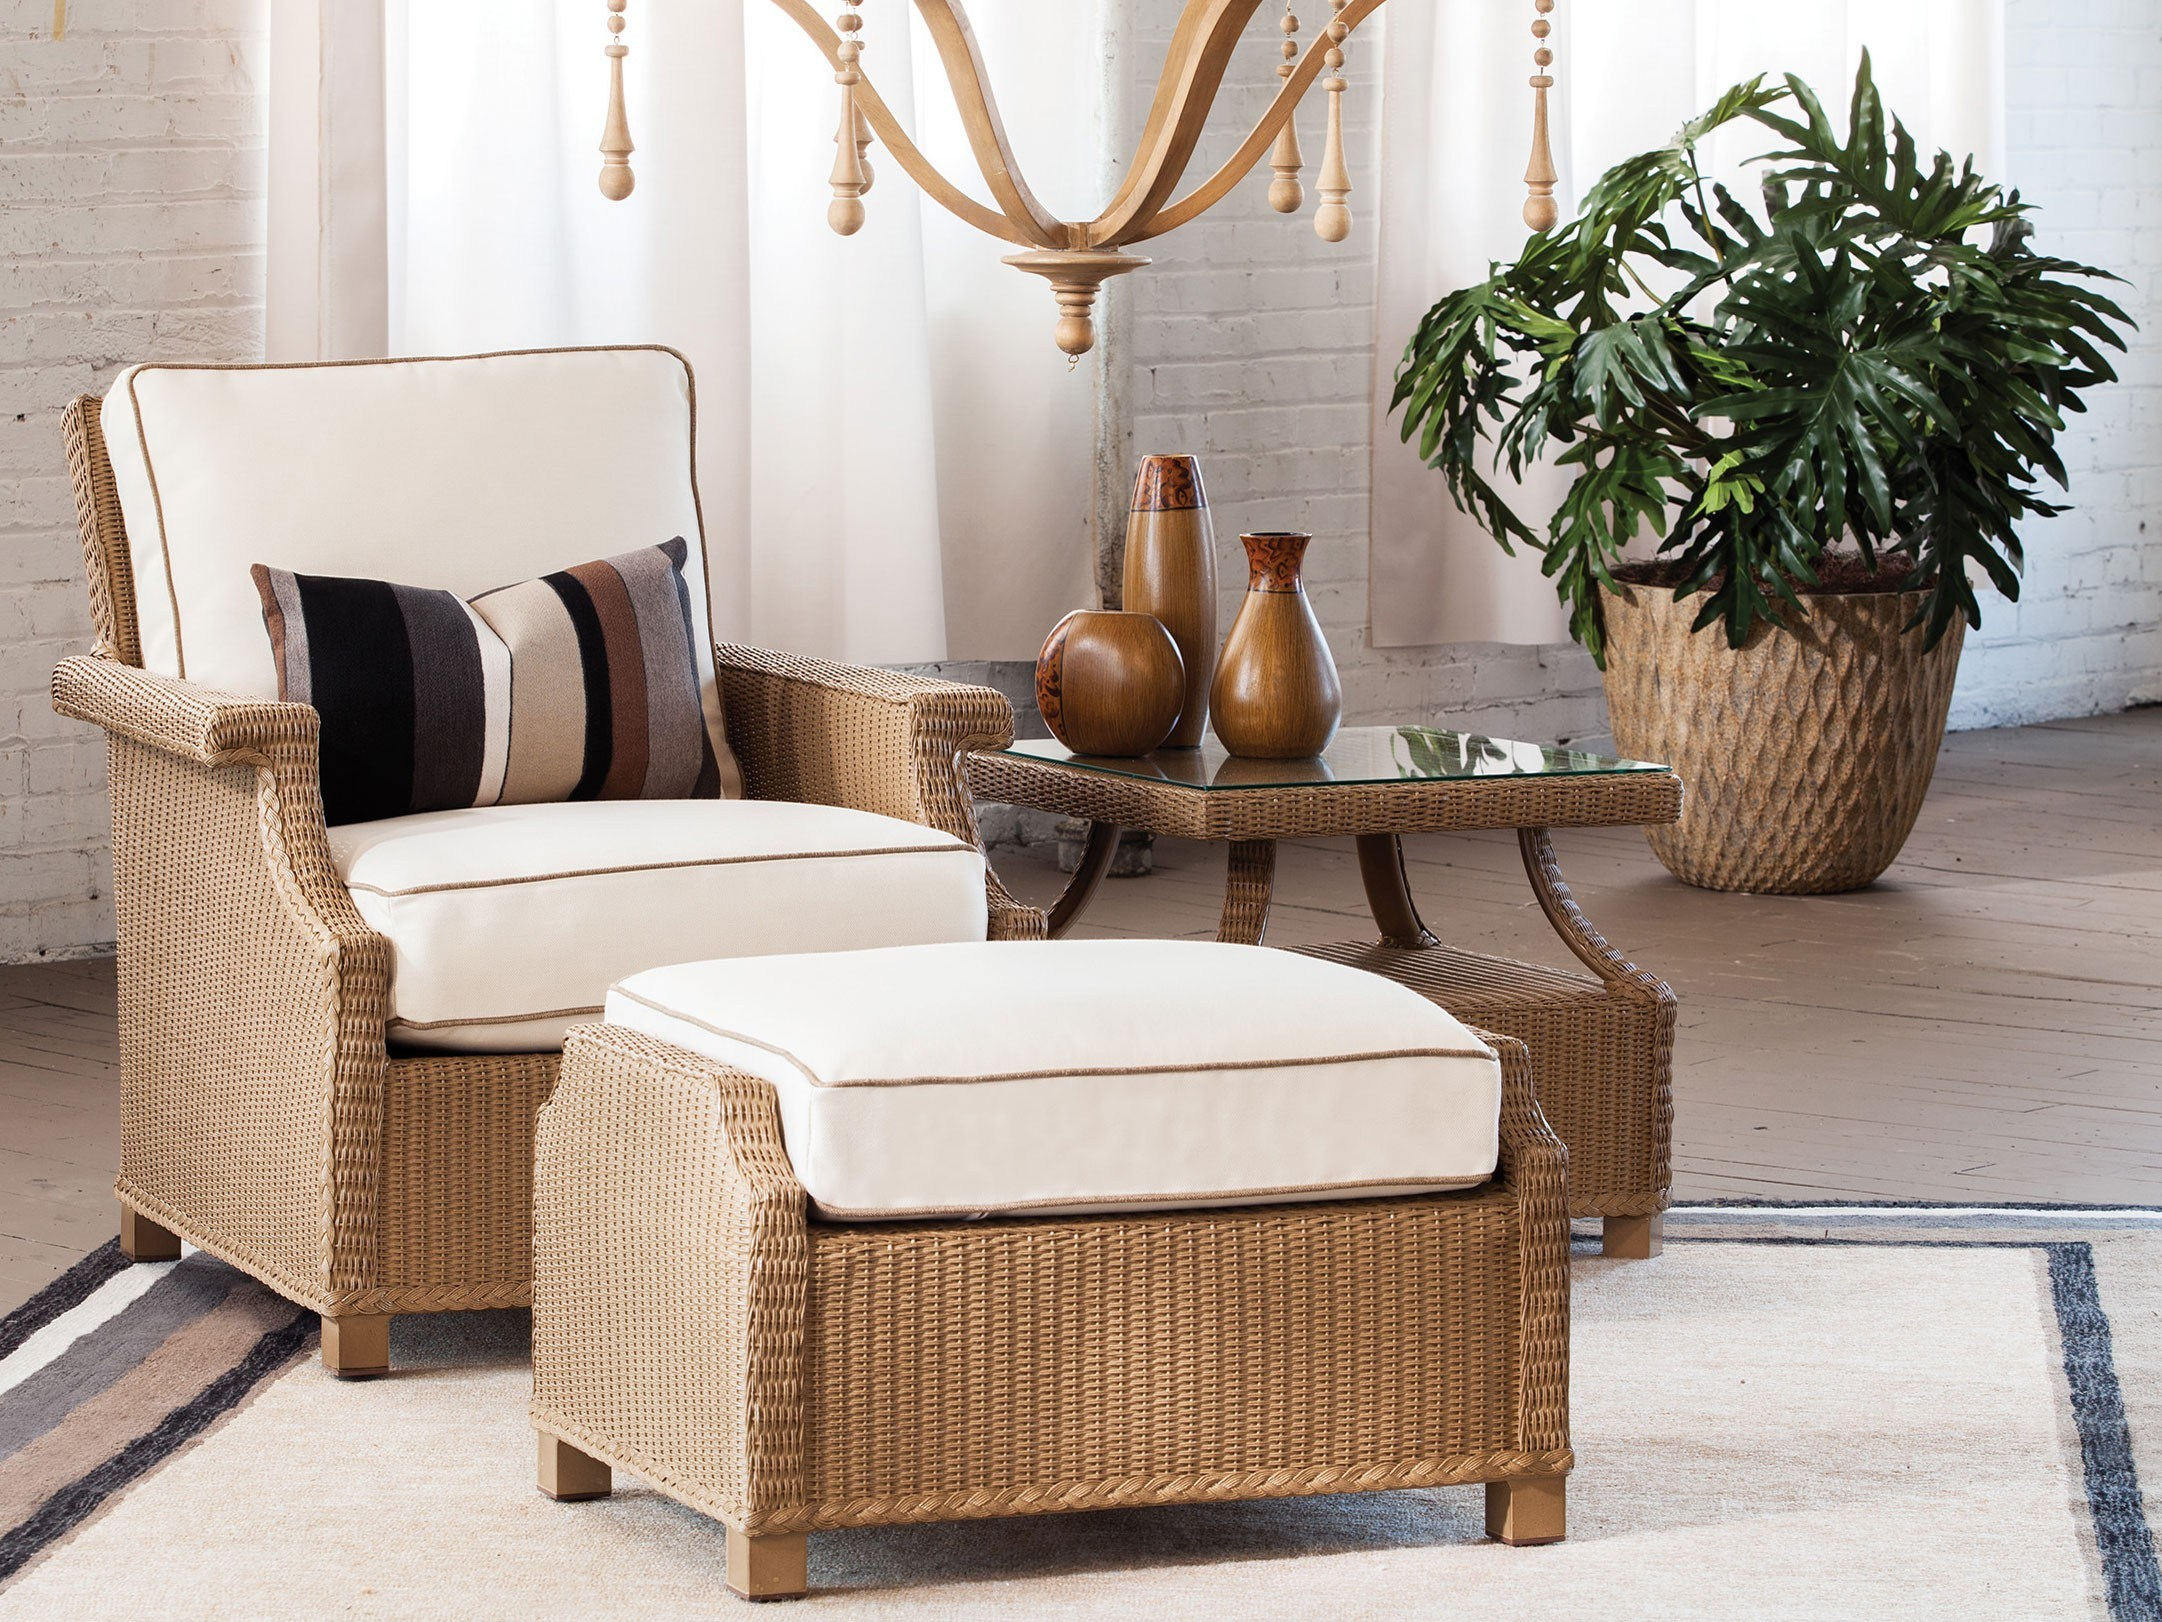 Pier One Ottoman | Pier One Wicker Furniture | Rattan Chairs Pier One